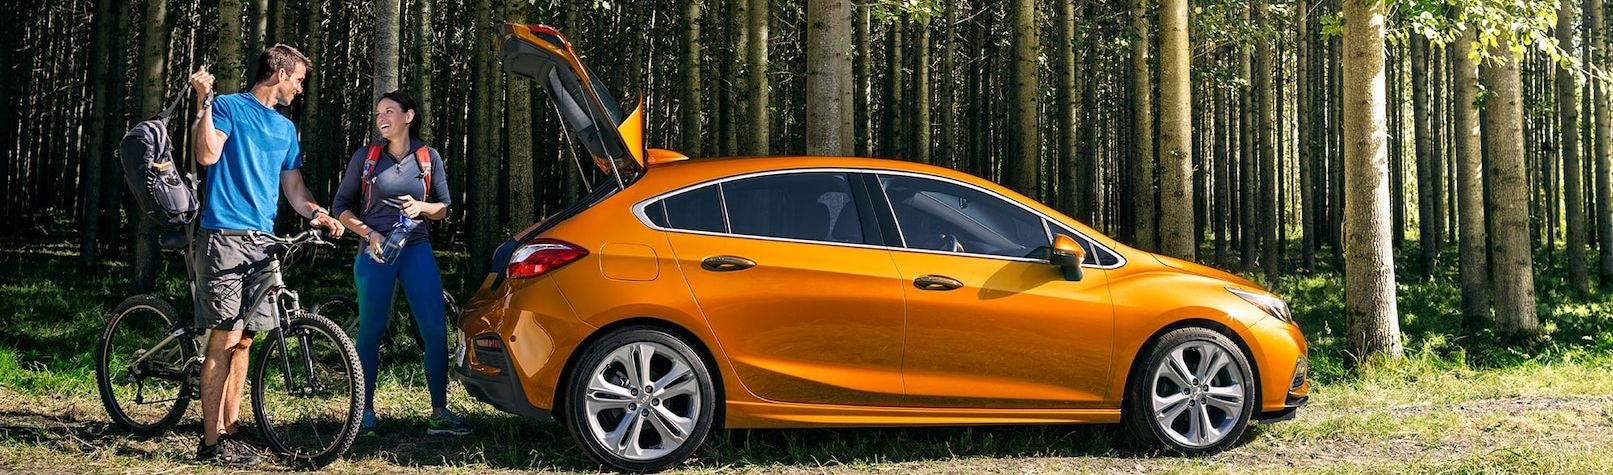 Explore in the Chevy Cruze!